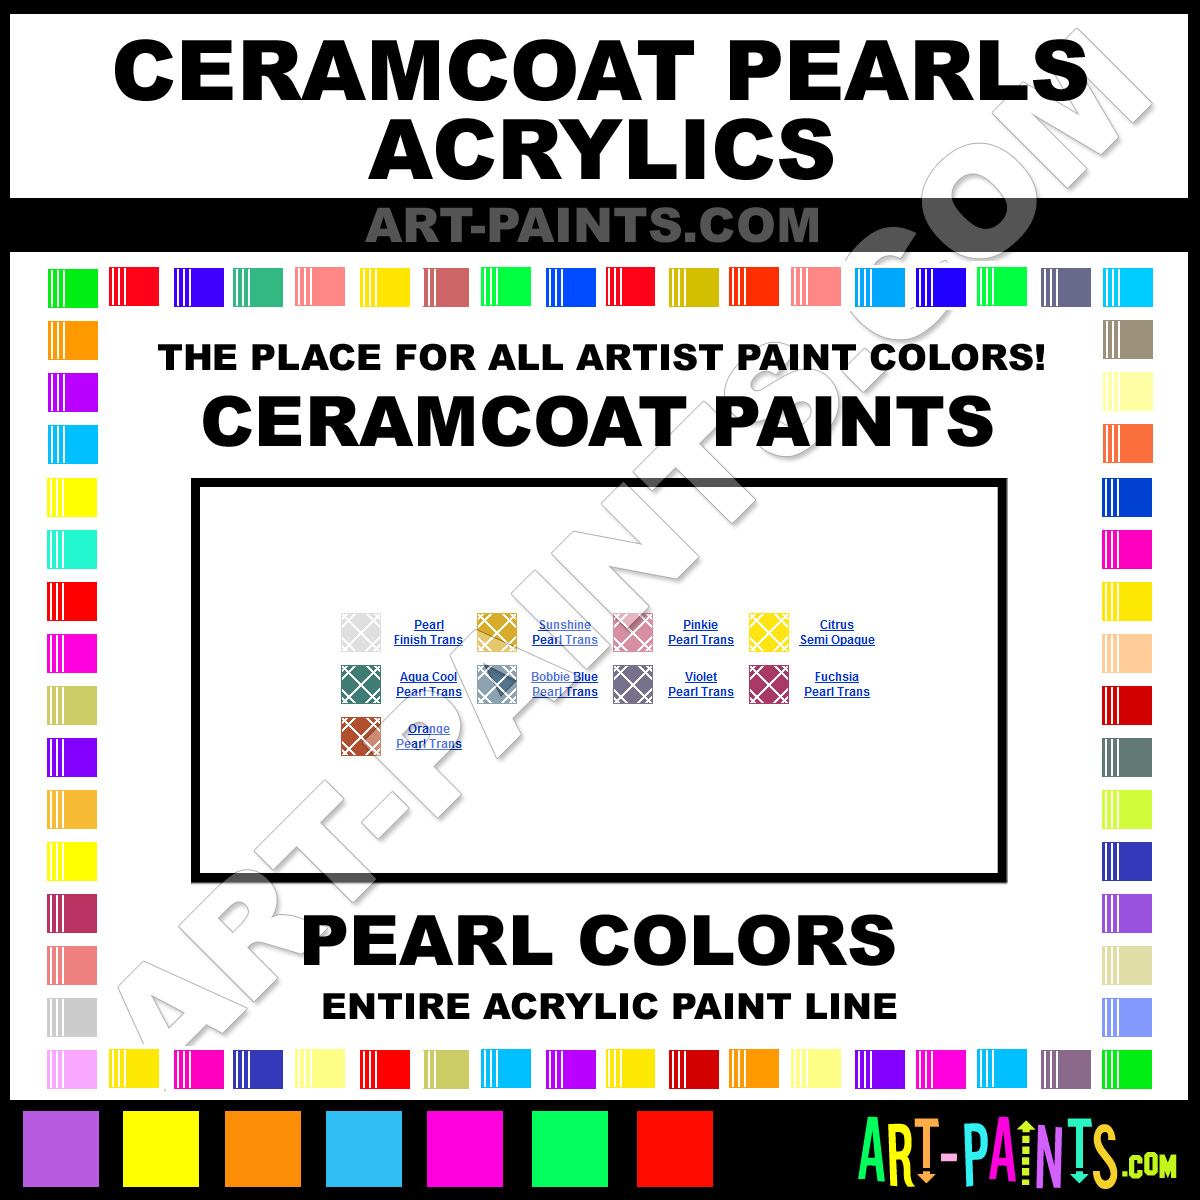 Ceramcoat pearls acrylic paint colors ceramcoat pearls for Basic acrylic paint colors to have